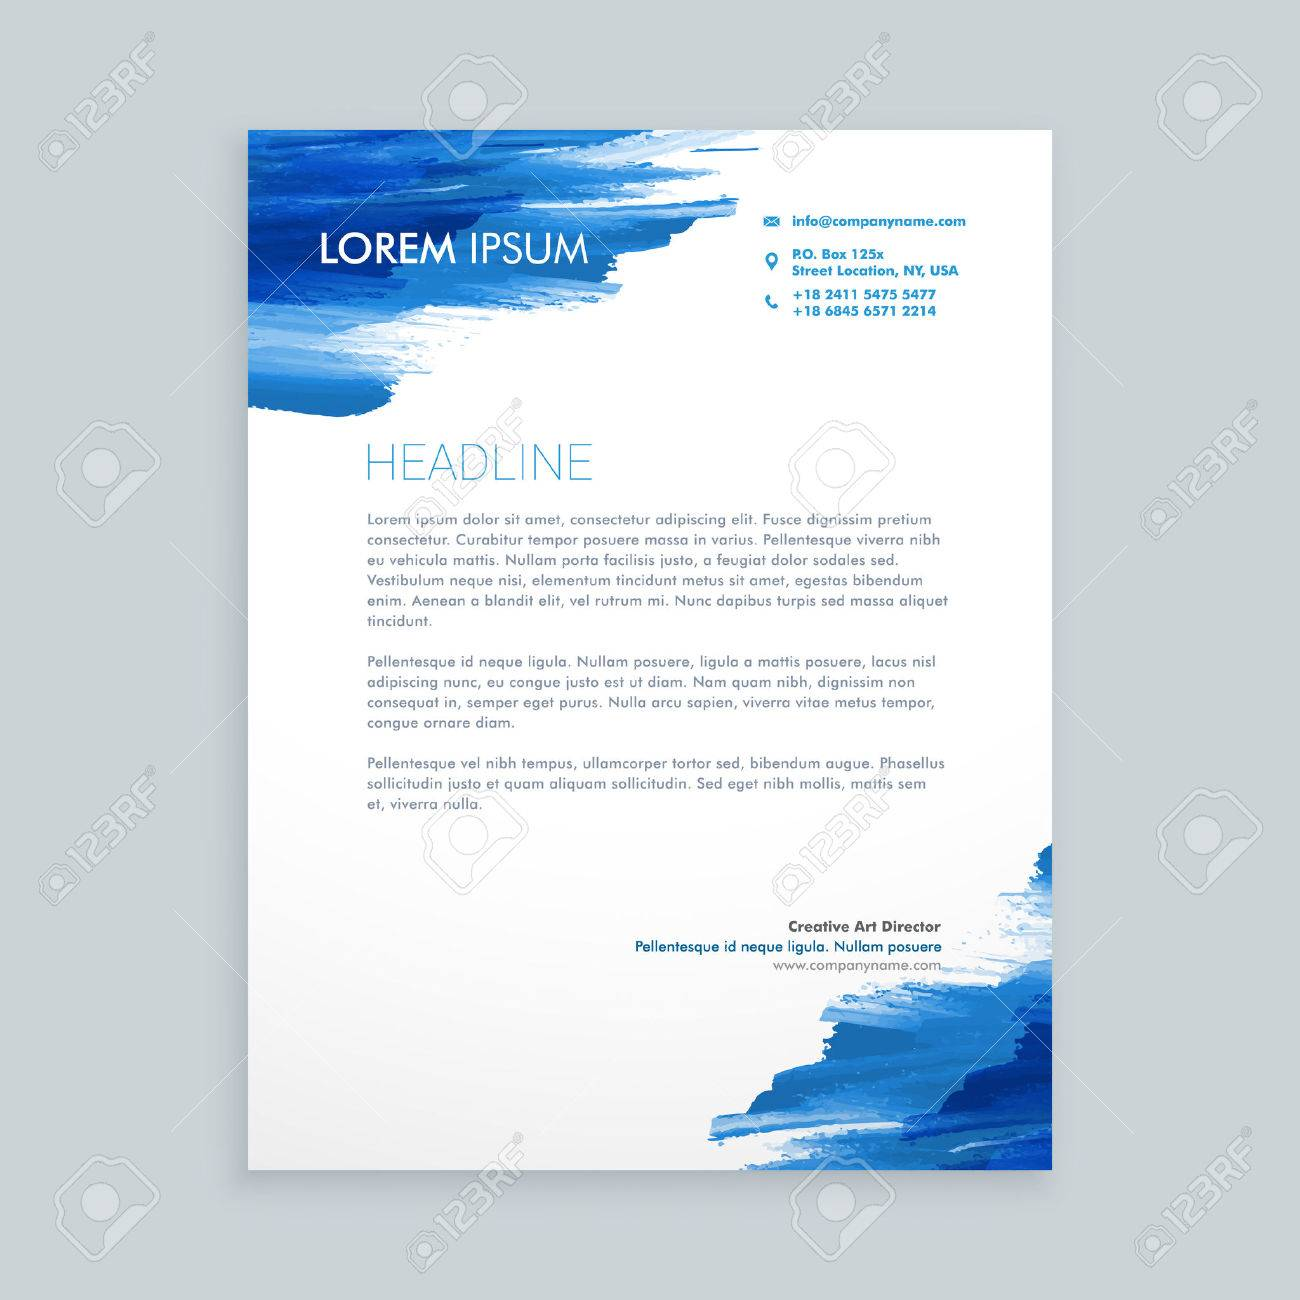 Blue flowing ink letterhead template royalty free cliparts vectors blue flowing ink letterhead template stock vector 55398053 altavistaventures Gallery